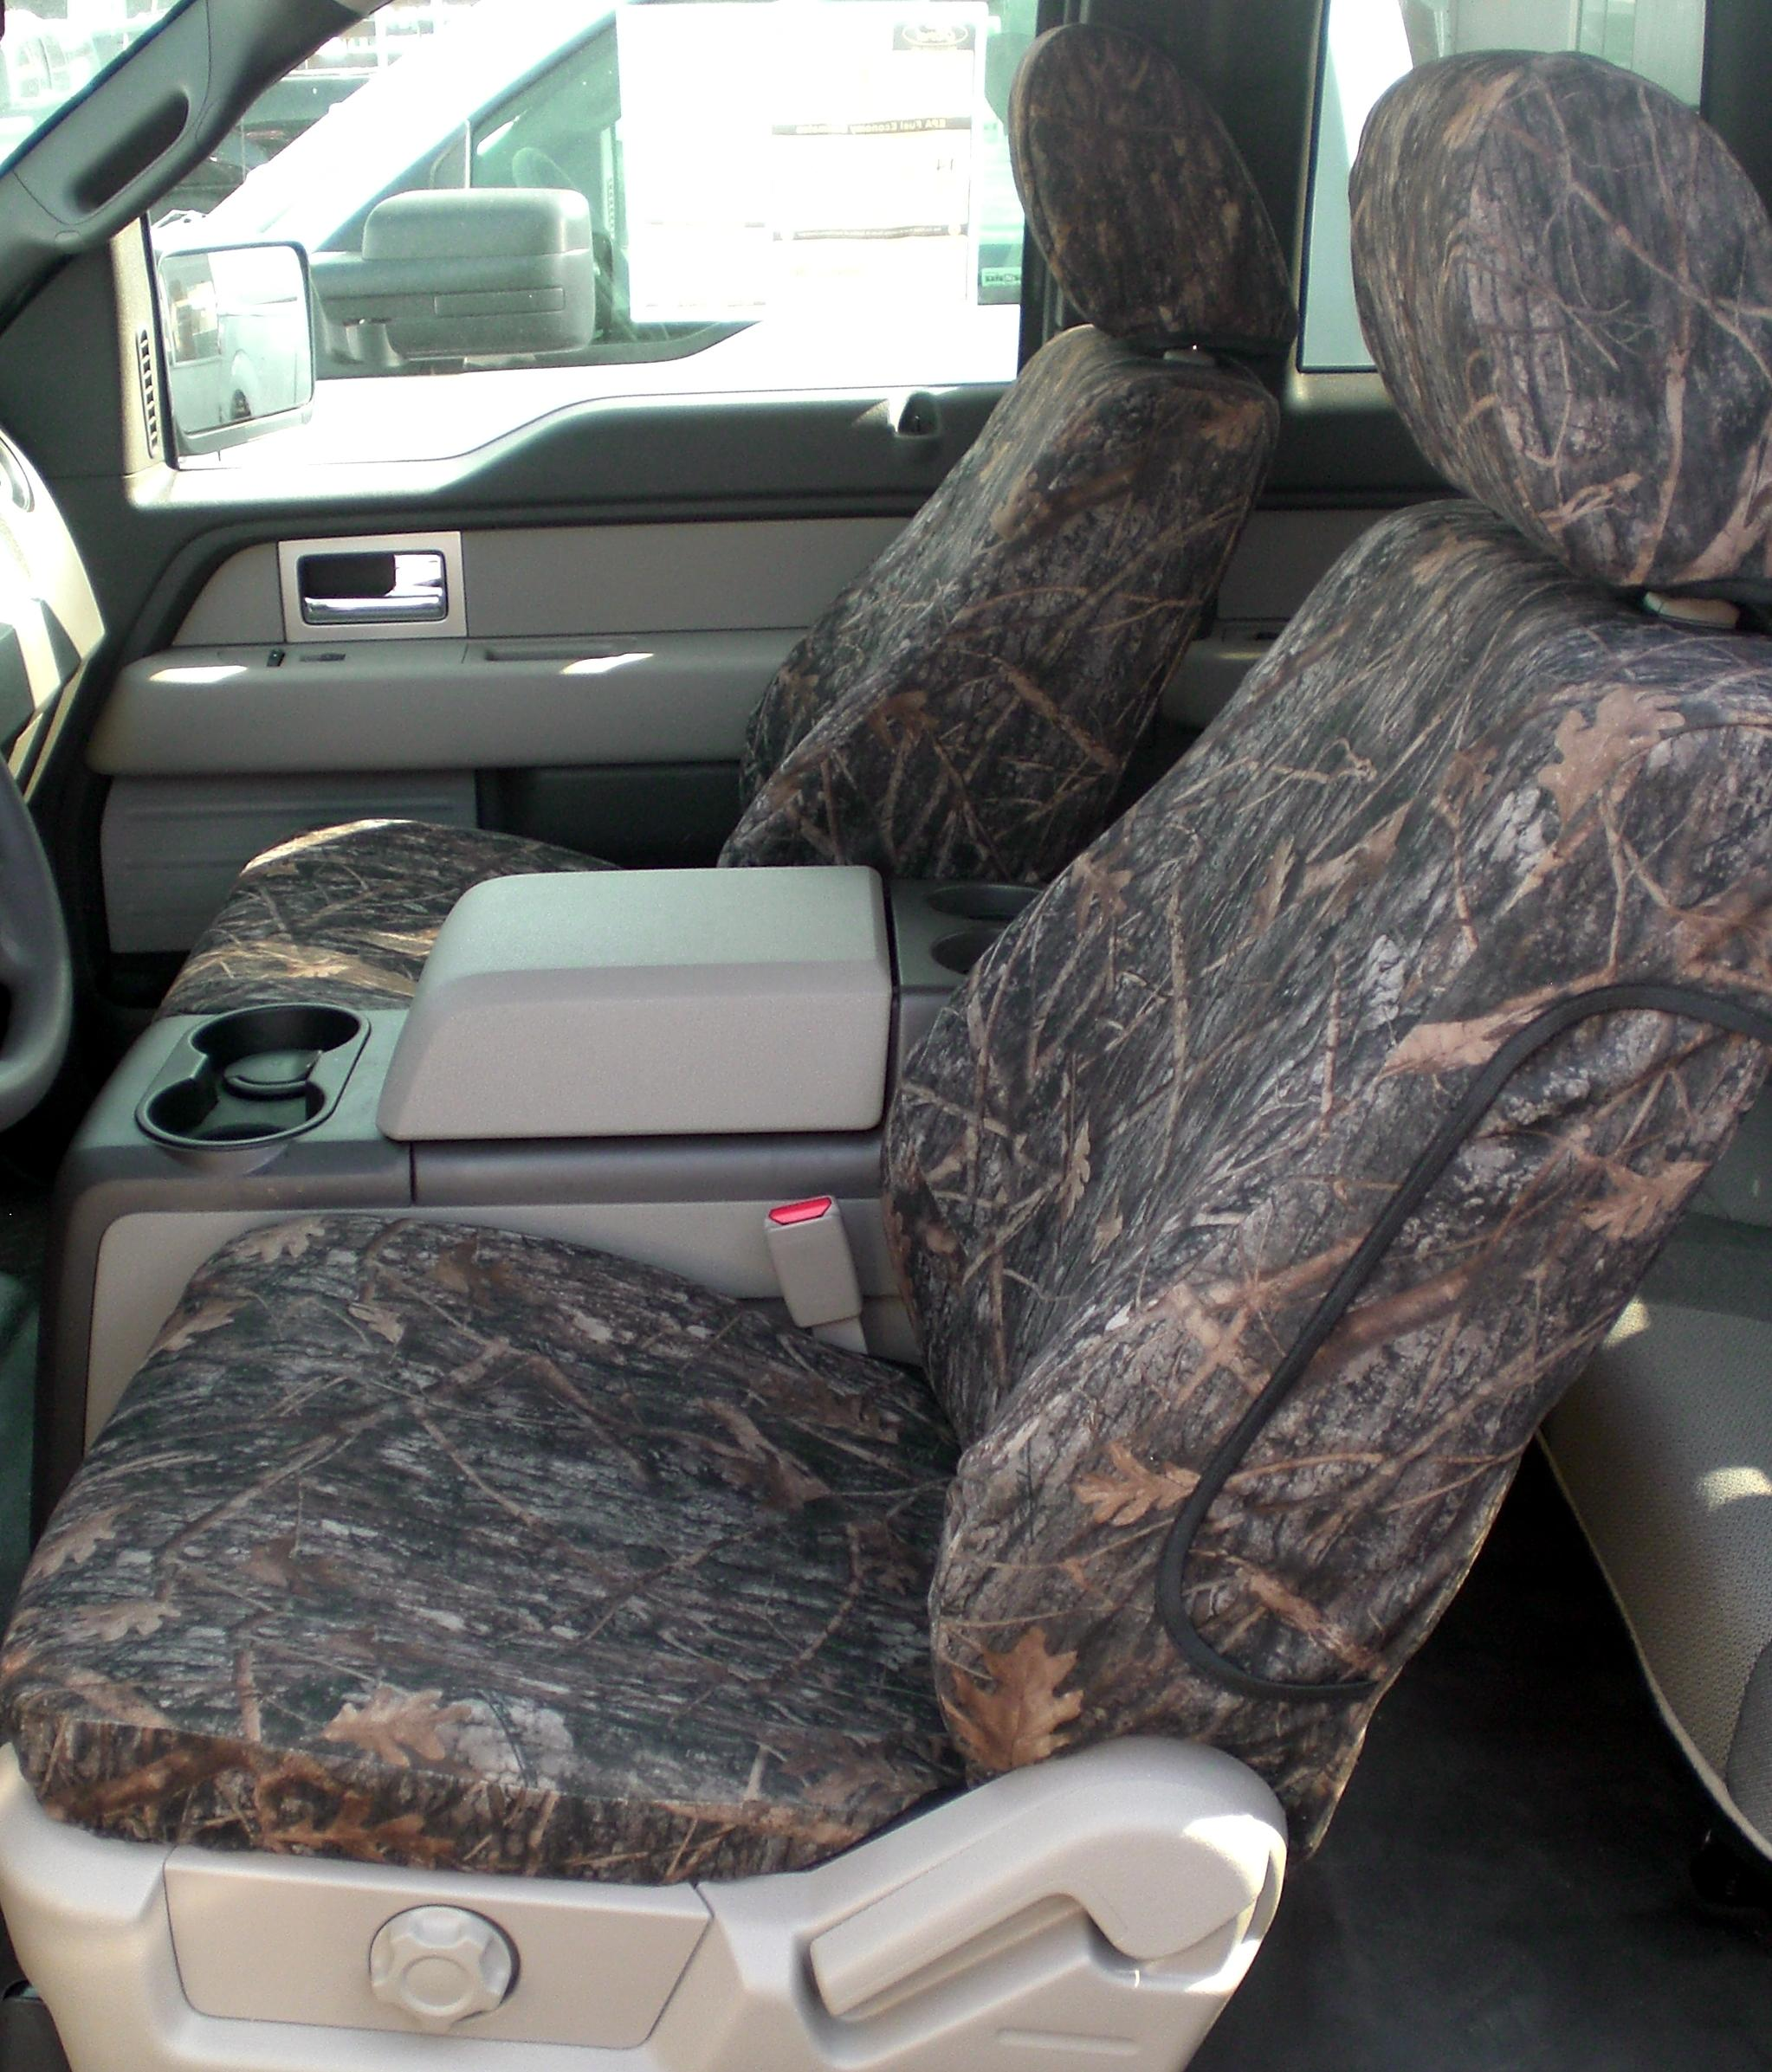 2010 Ford Ranger Super Cab Exterior: 2010 Ford F150 Super Cab Front And Back Seat Set. Front